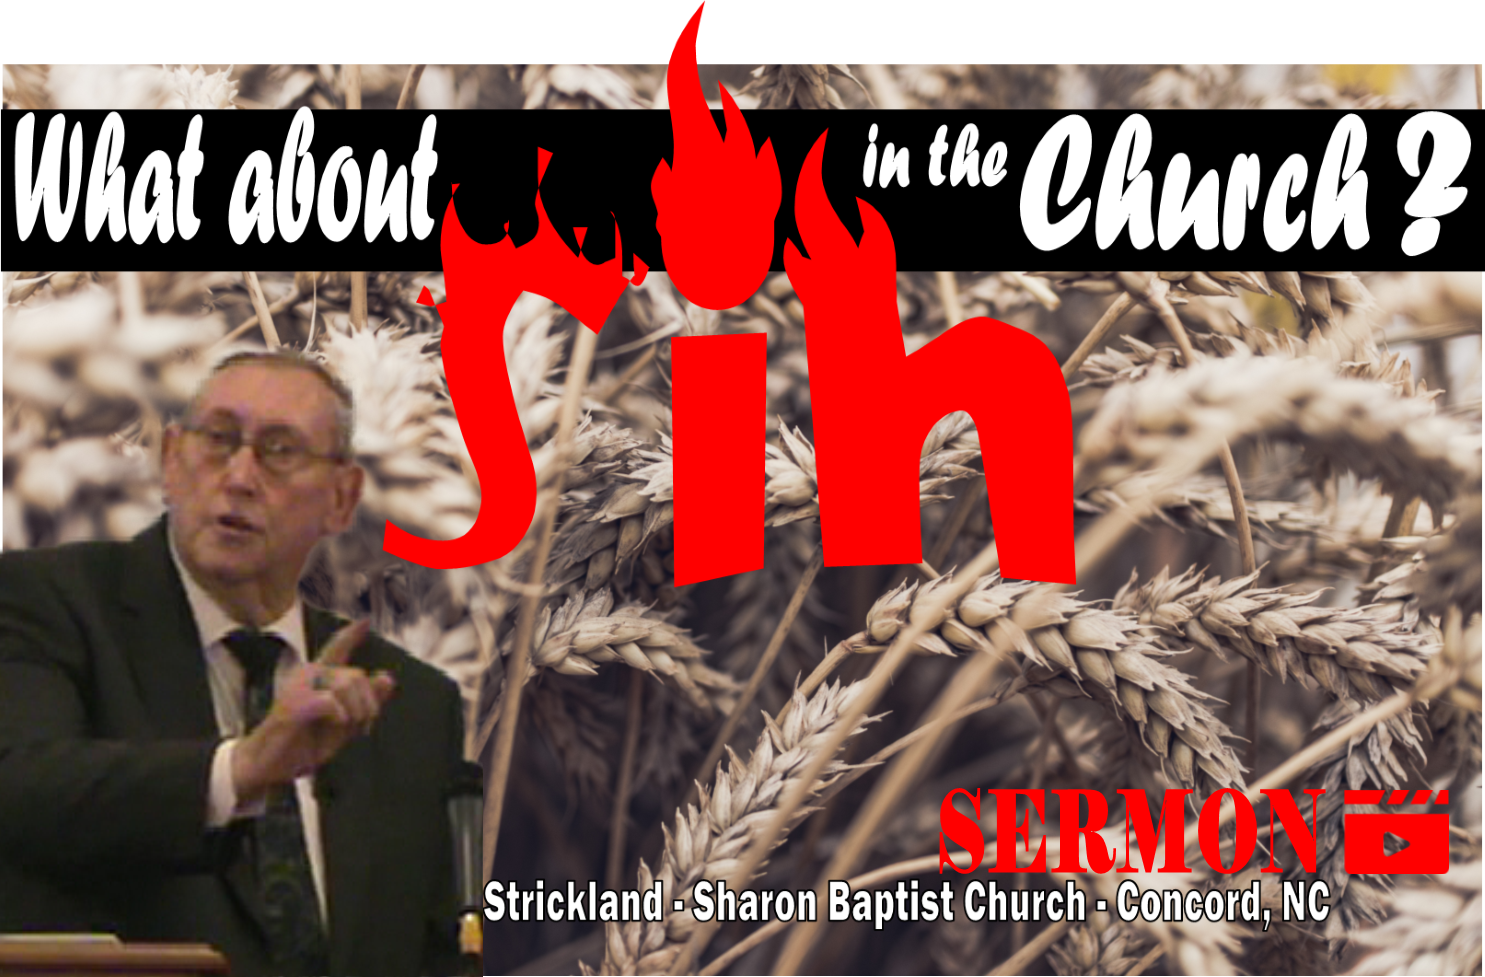 What about sin in the church? Sermon by James Strickland